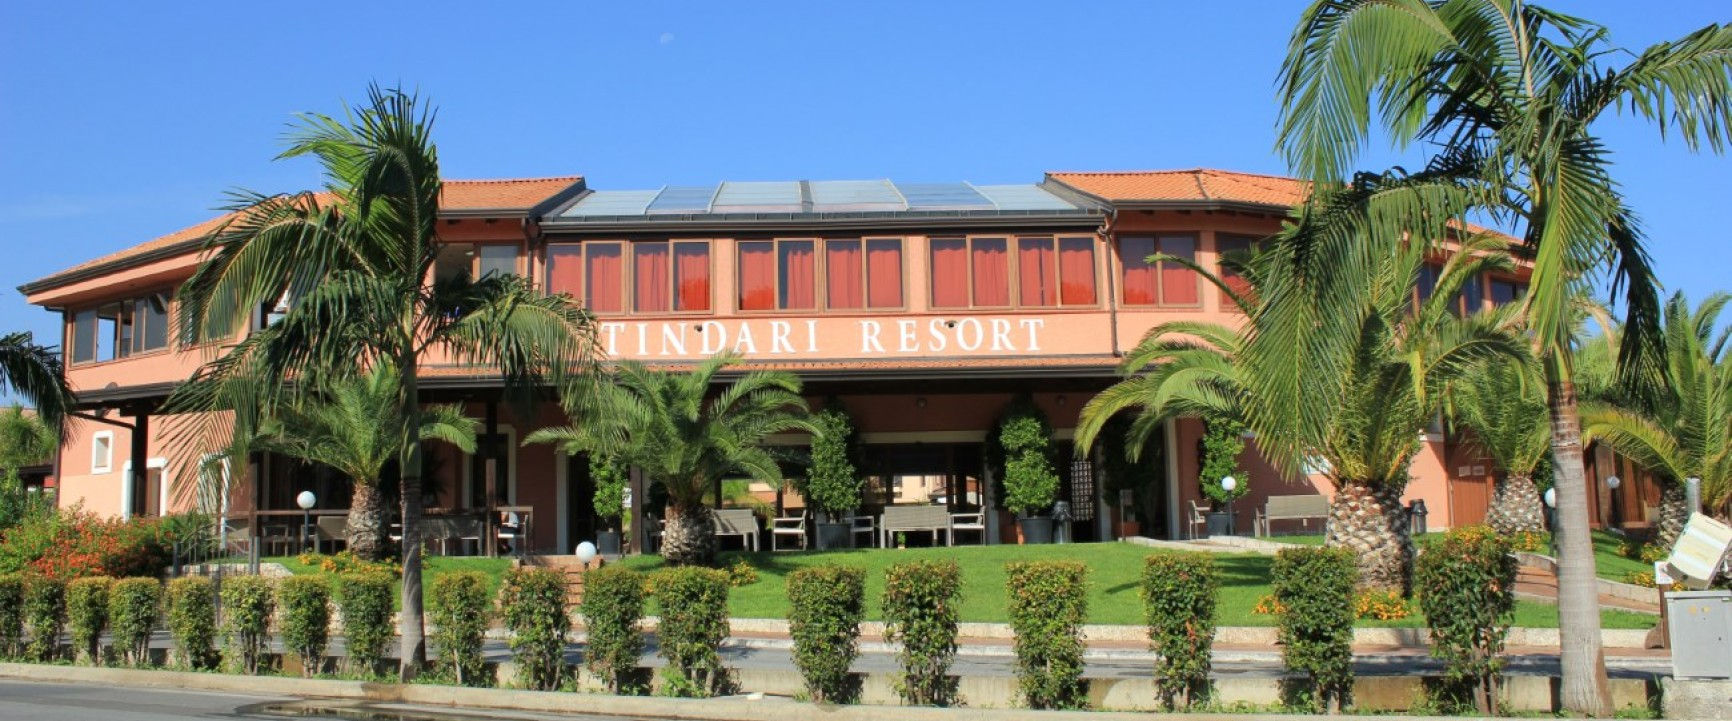 Hotel Tindari Resort